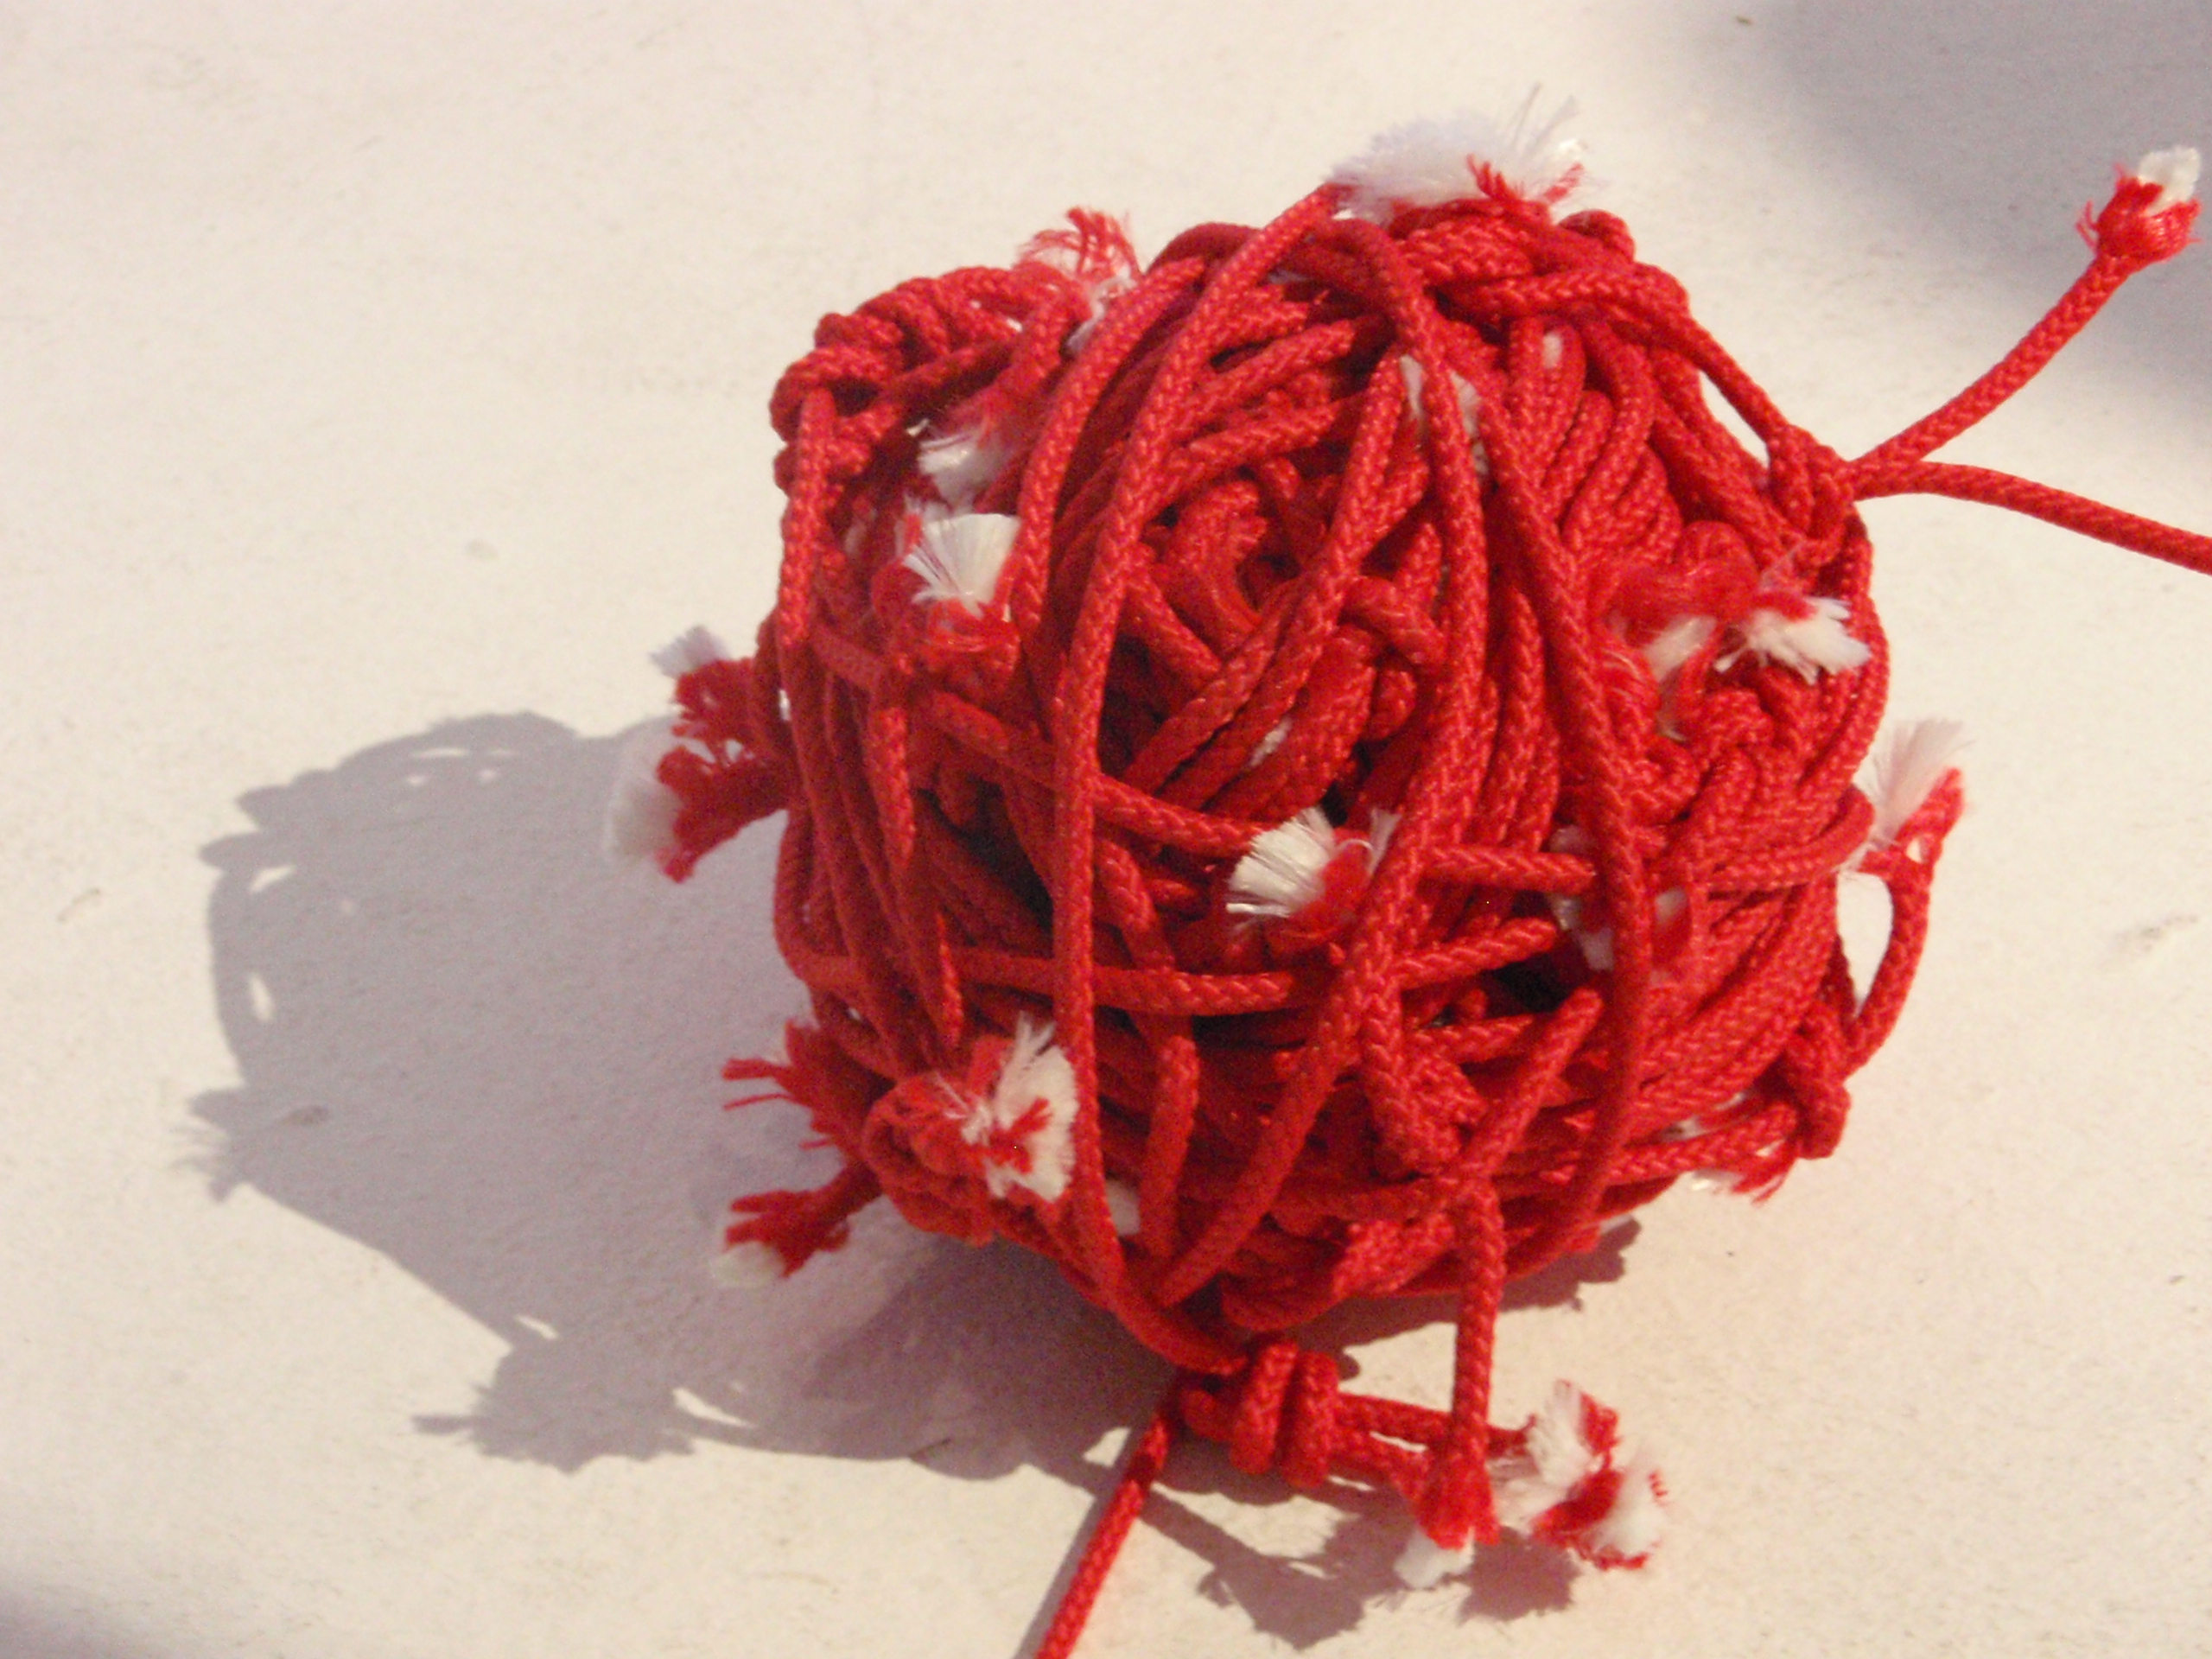 Red ball of tangled threads